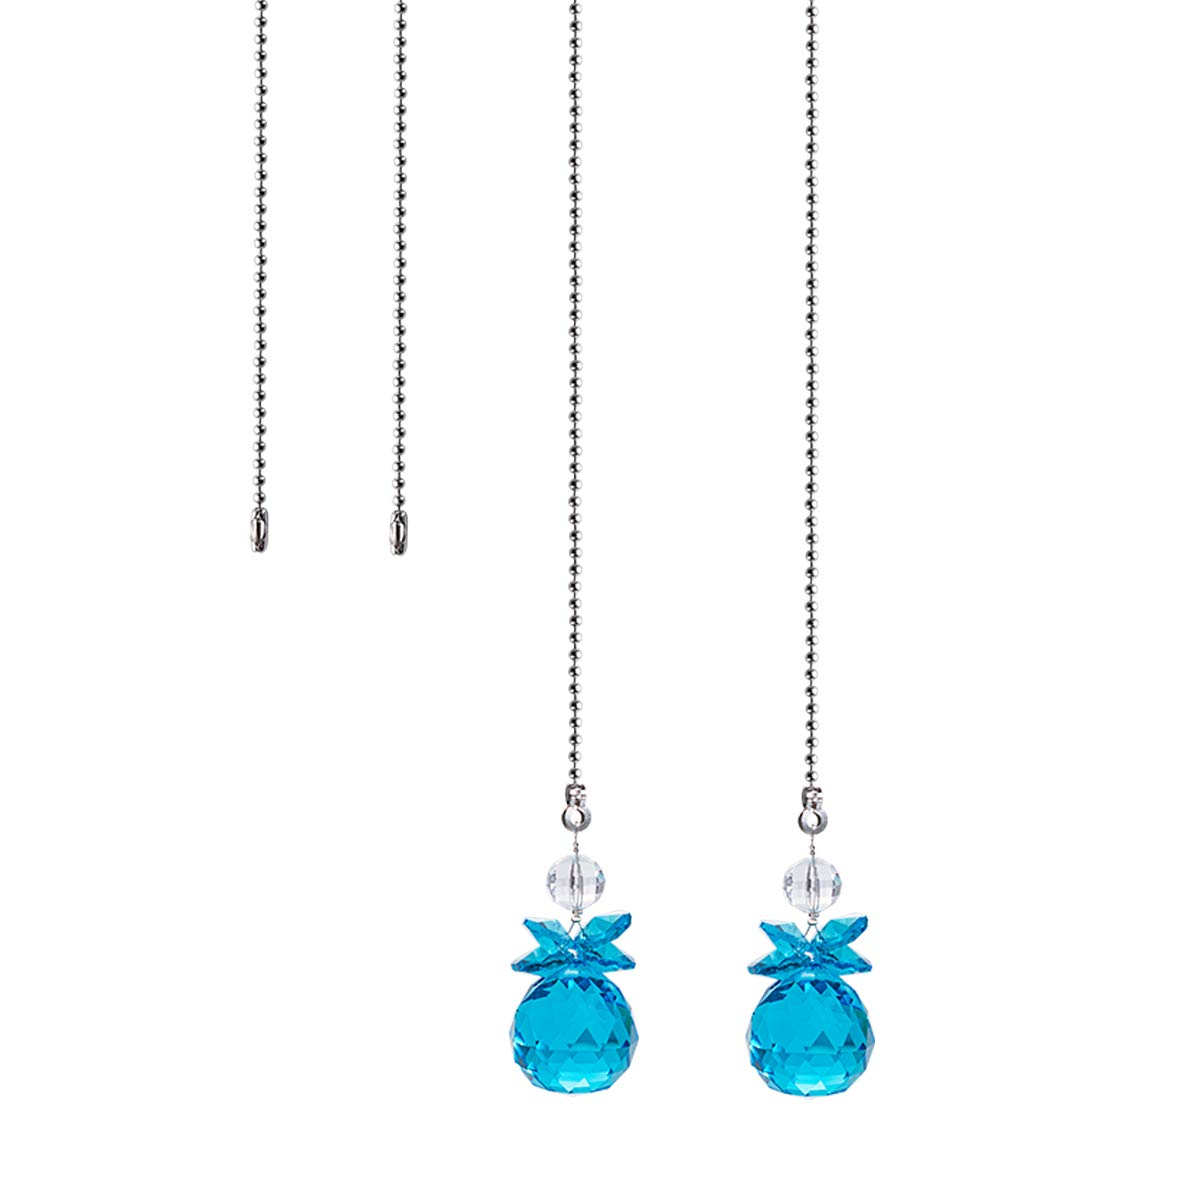 Crystal Ceiling Fan Pull Chains Hanging Pendants Prism Pack Of 2 Light Blue